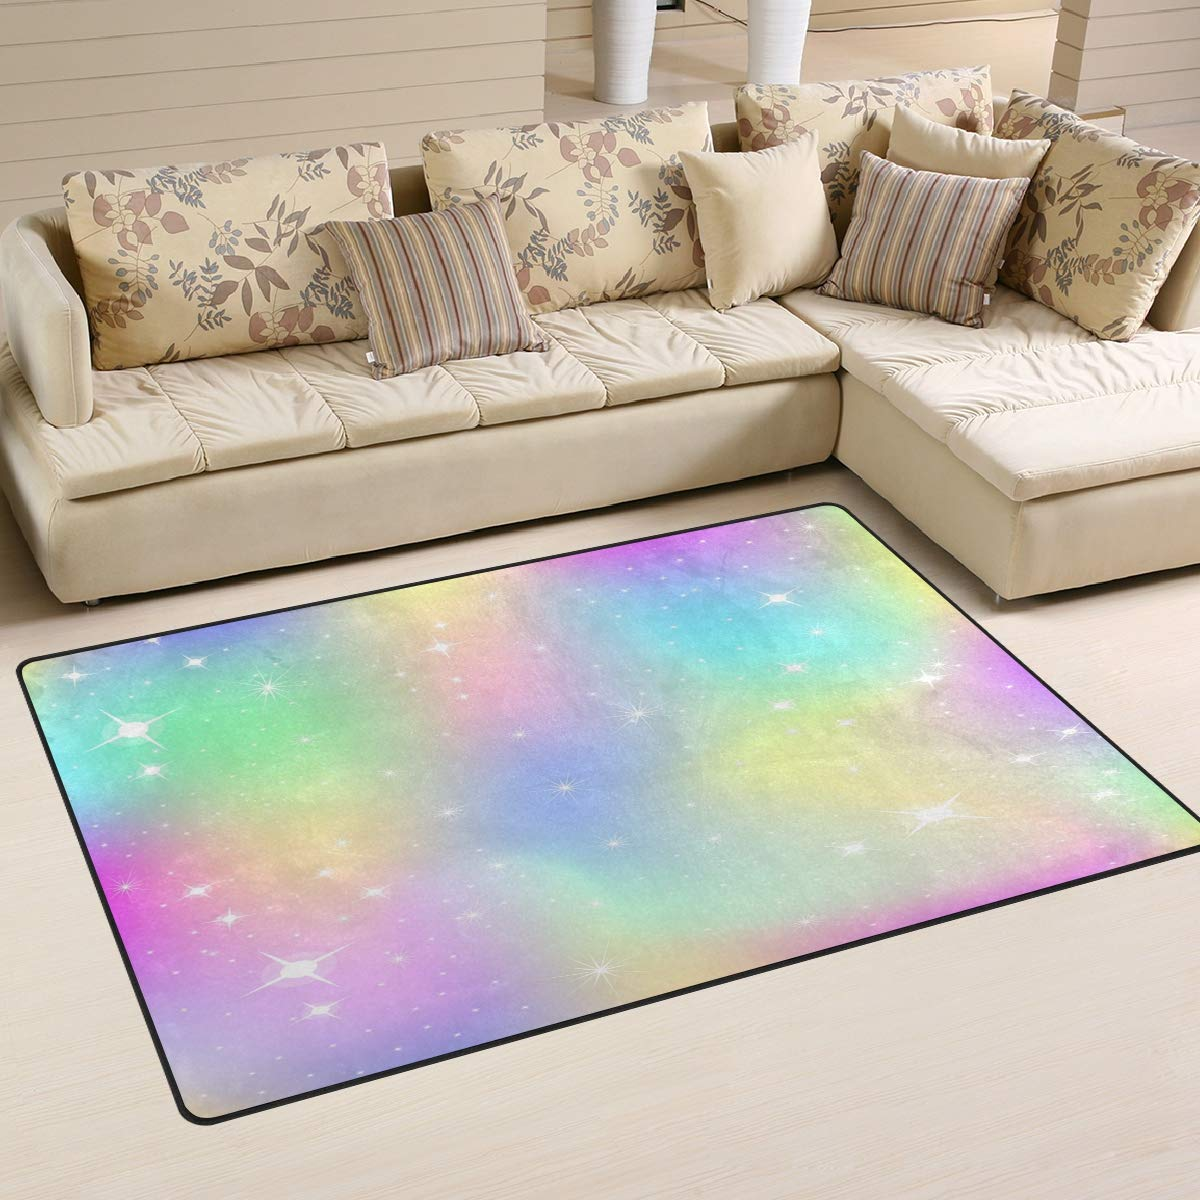 ALAZA Home Decor Unicorn Background with Rainbow Mesh Area Rug Carpet, Rugs Floor Carpet Mat Living Room Carpet for Girl's Room Home Indoor Decor 3'x5'